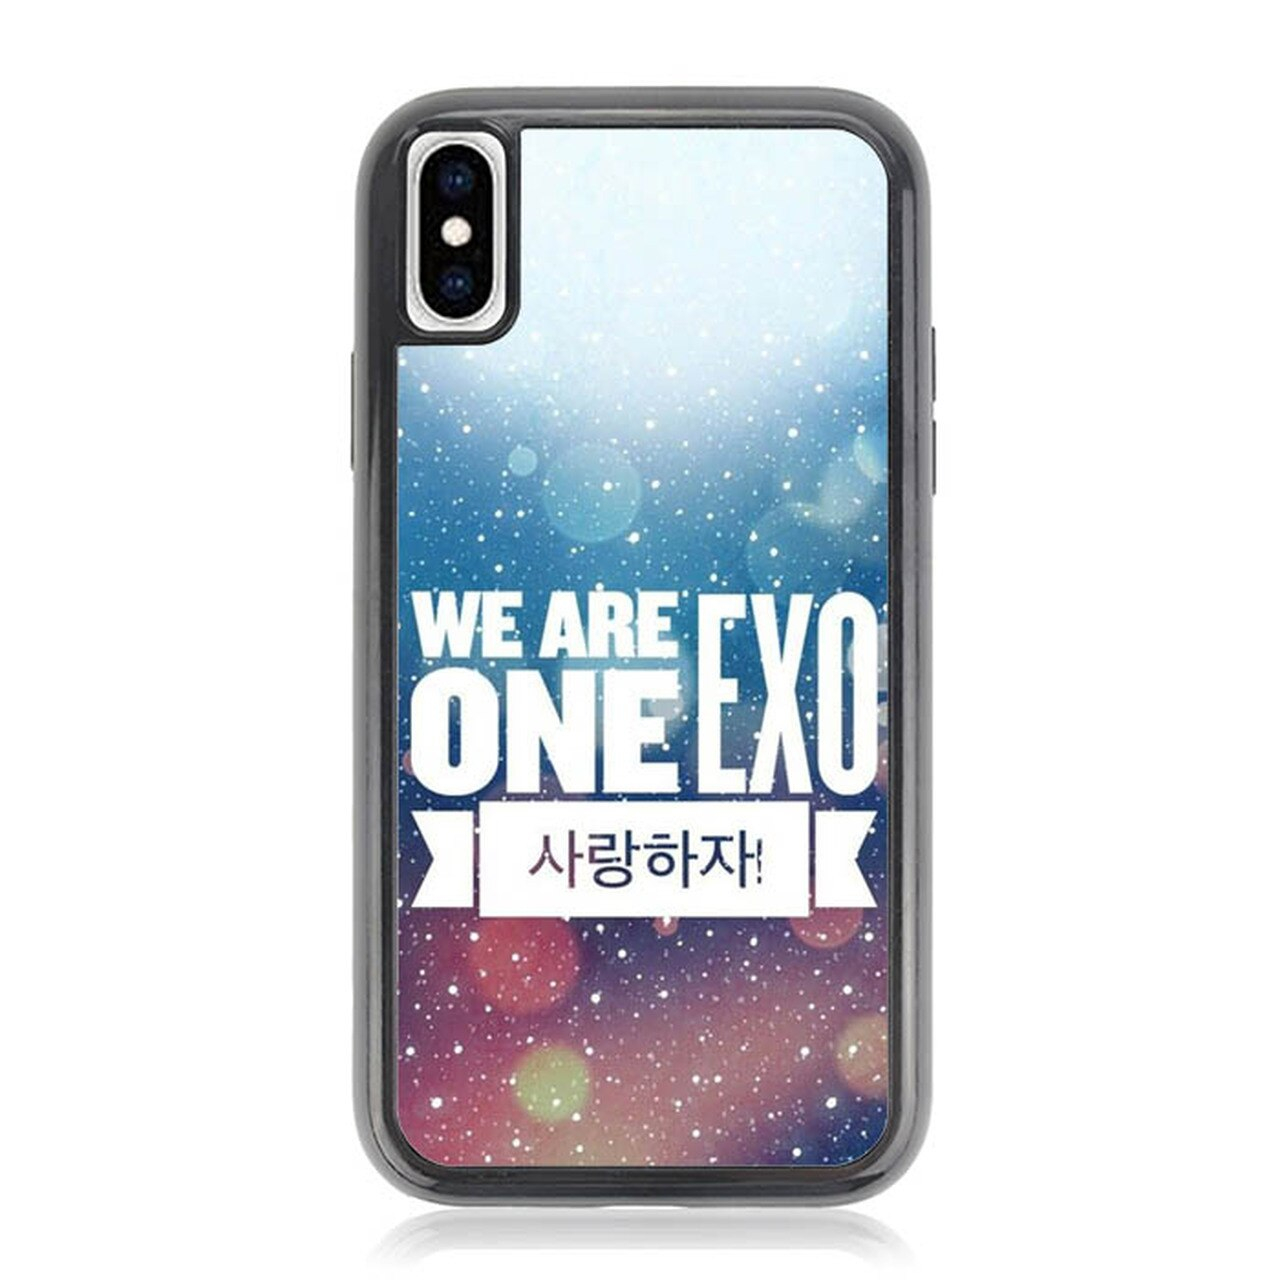 exo we are one b0556 iphone xs max case